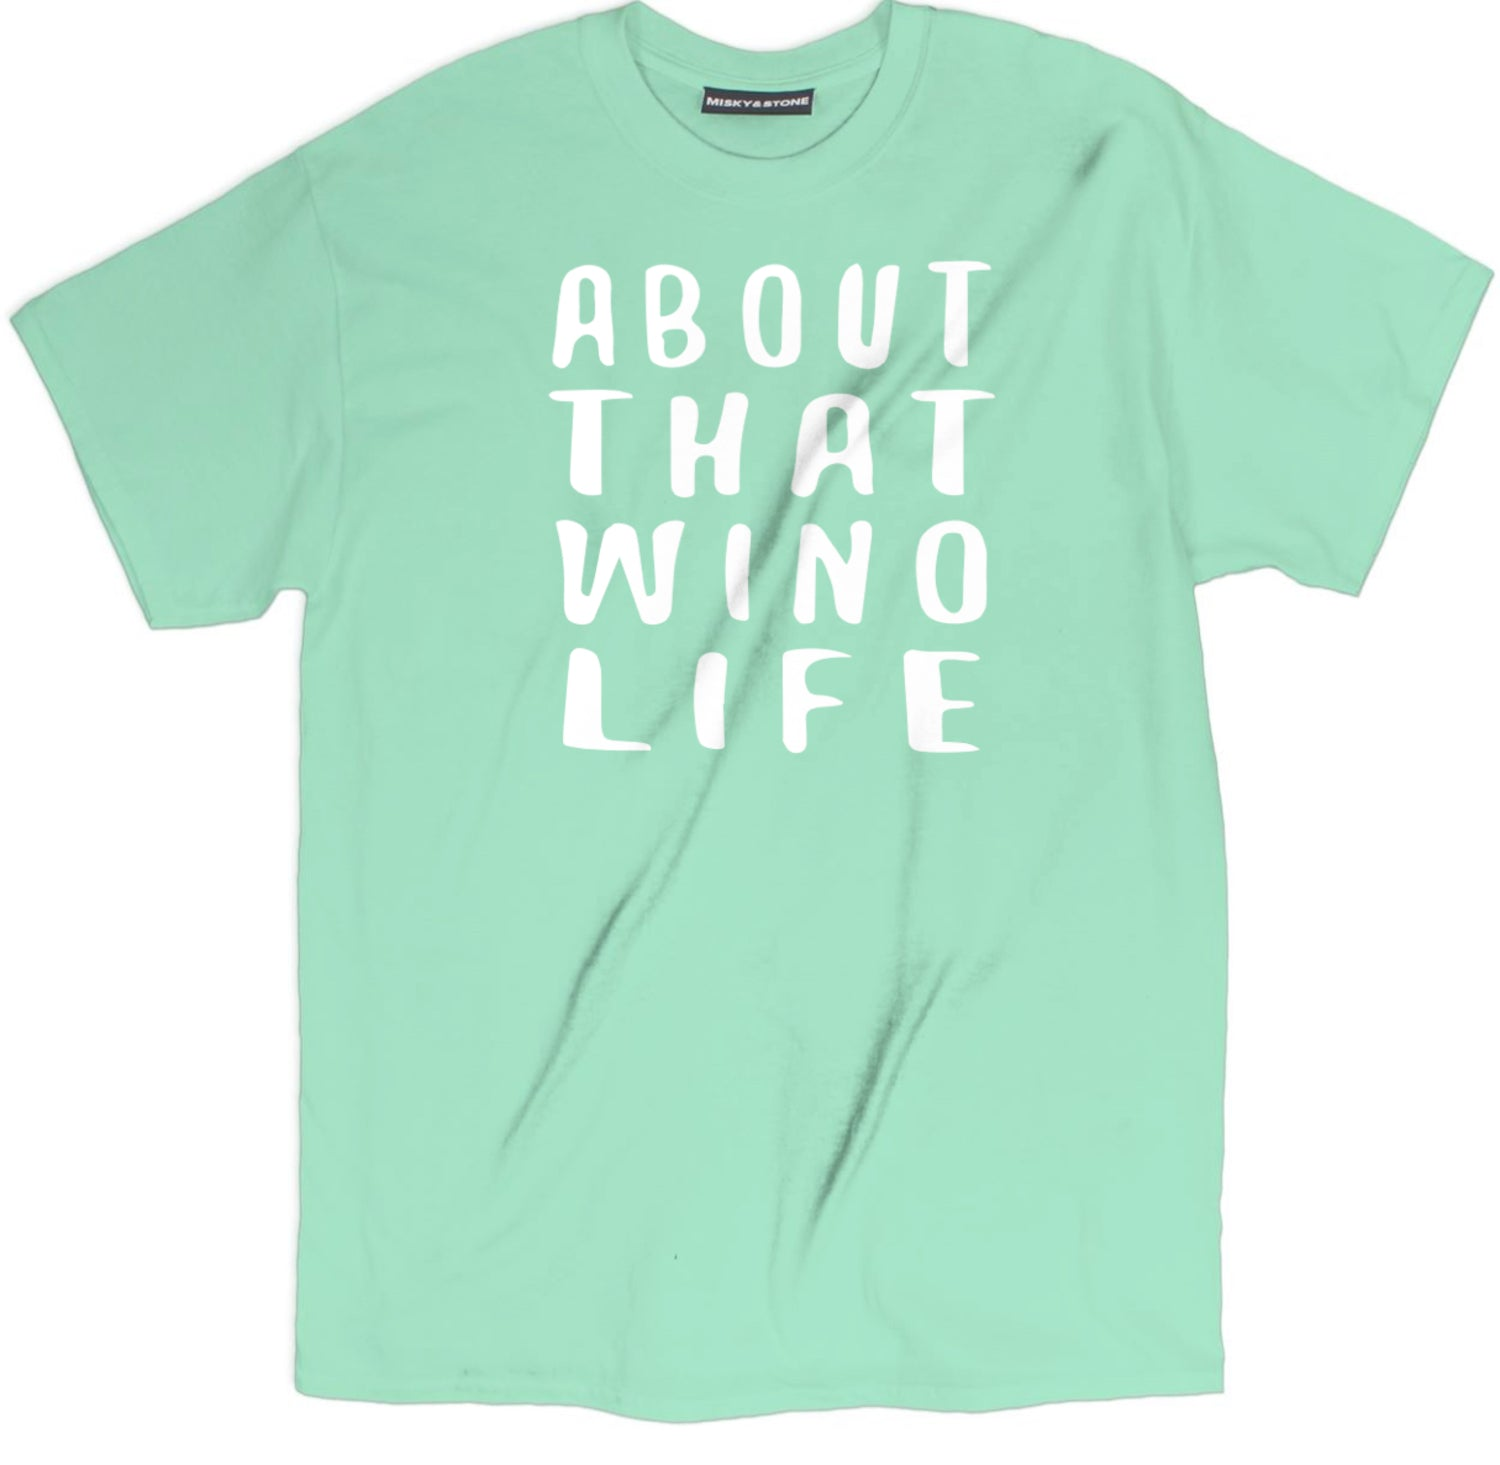 About That Wino Life T Shirt